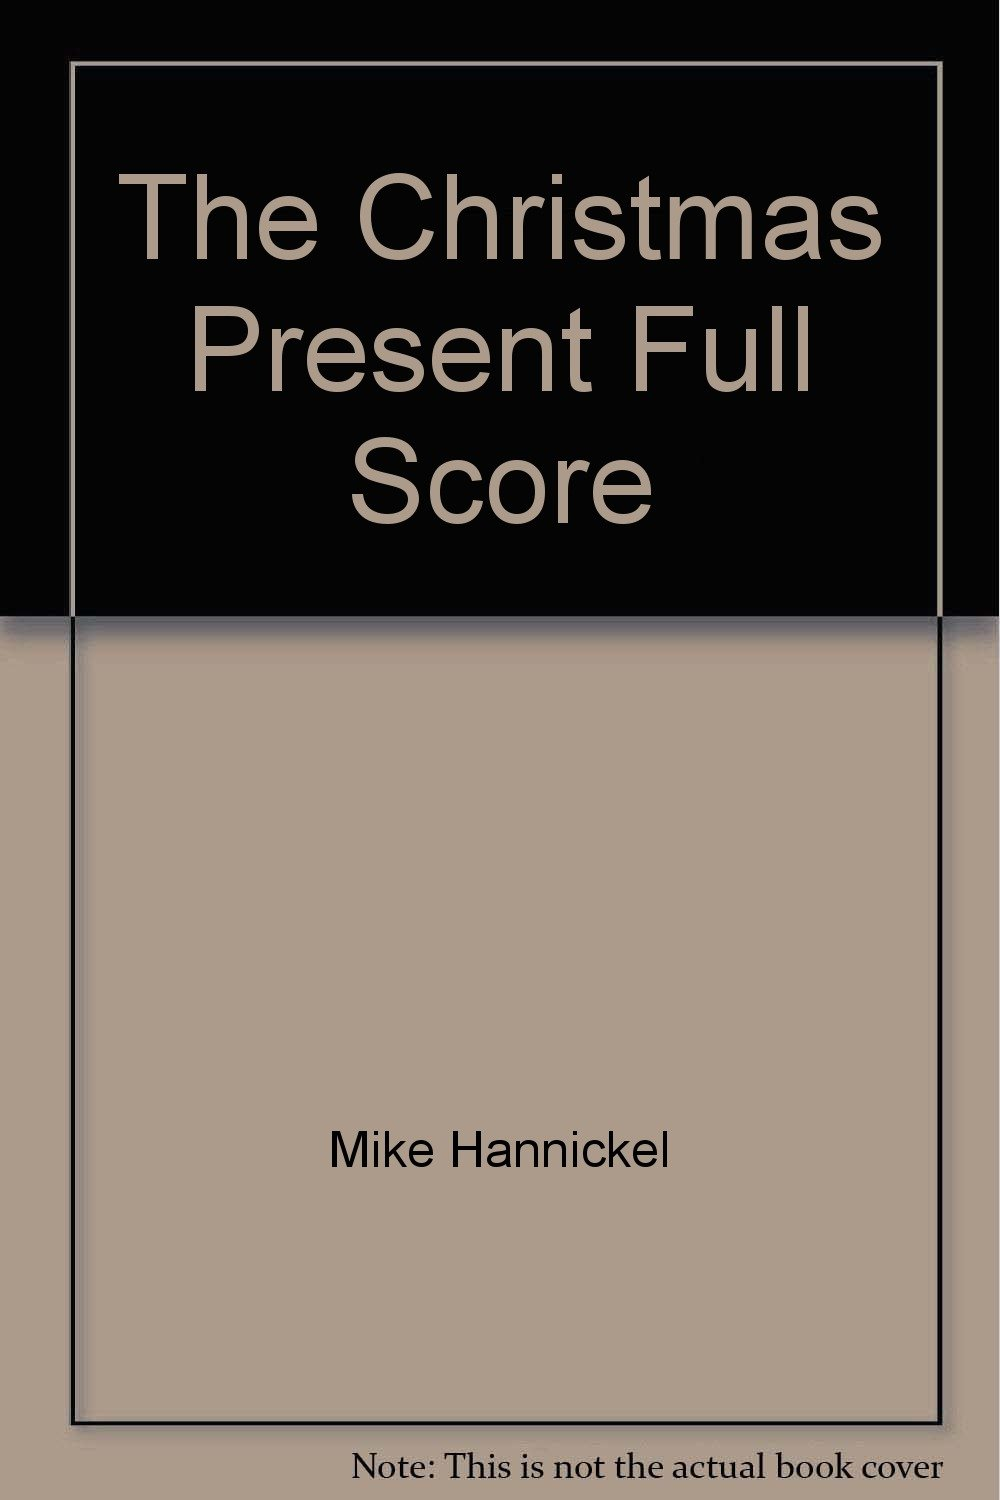 The Christmas Present Full Score PDF